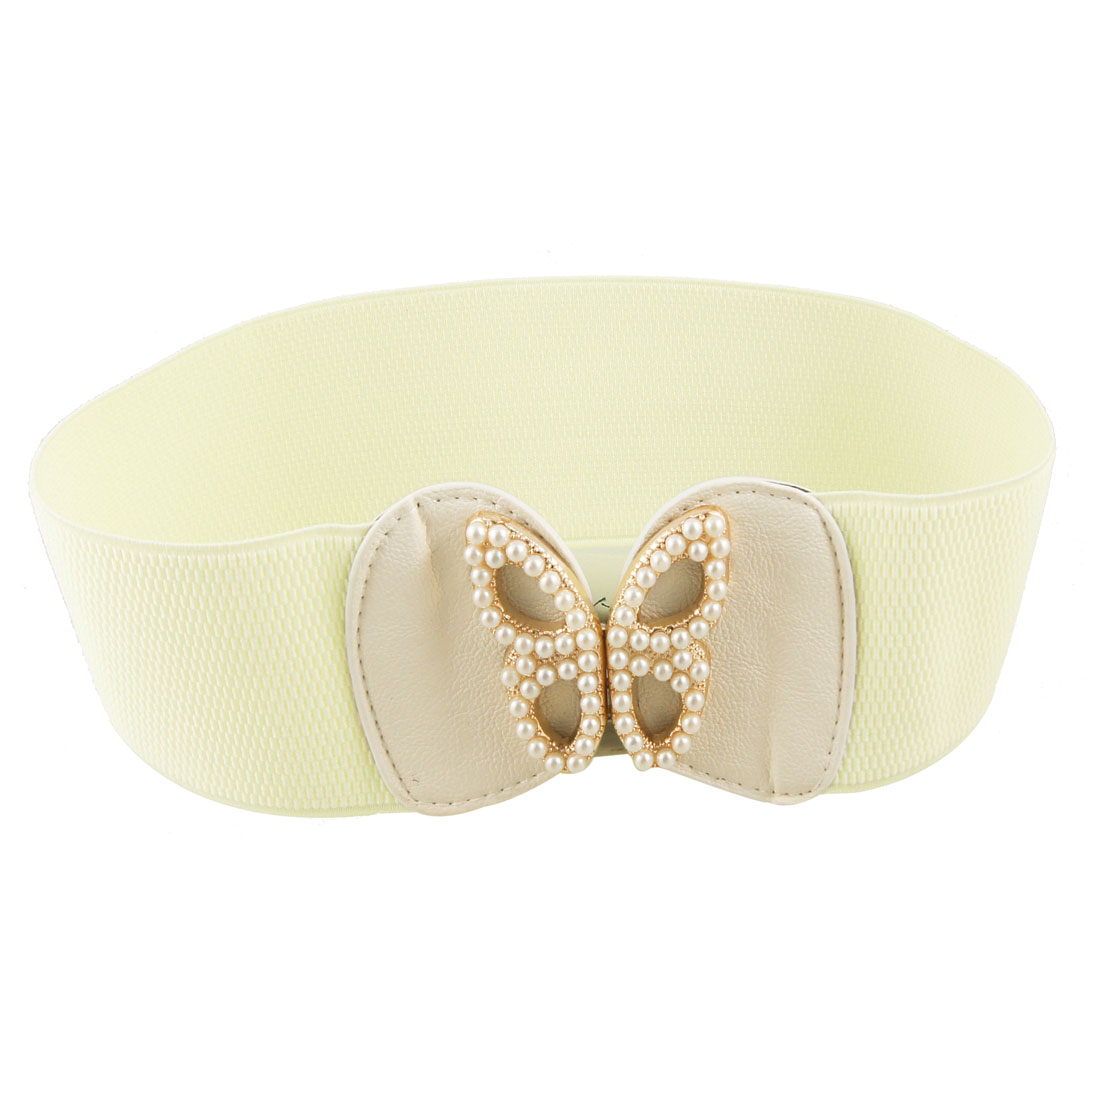 Faux Leather Batterfly Beads Decor Off White Elastic Cinch Belt for Ladies Women